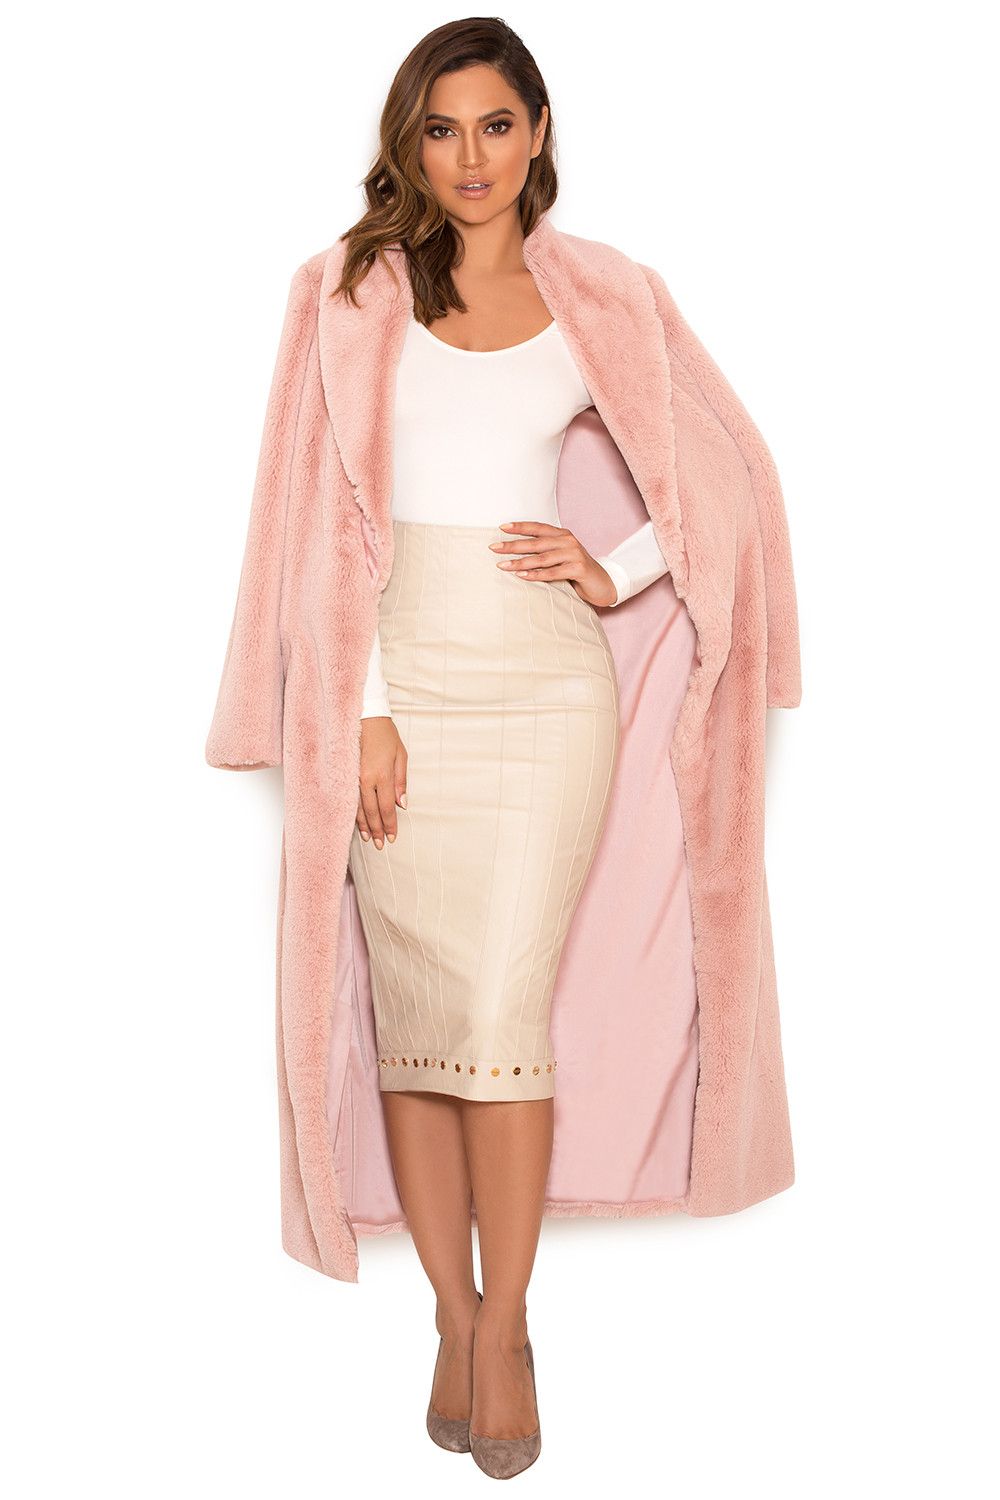 Blush Pink Coat Fashion Women S Coat 2017